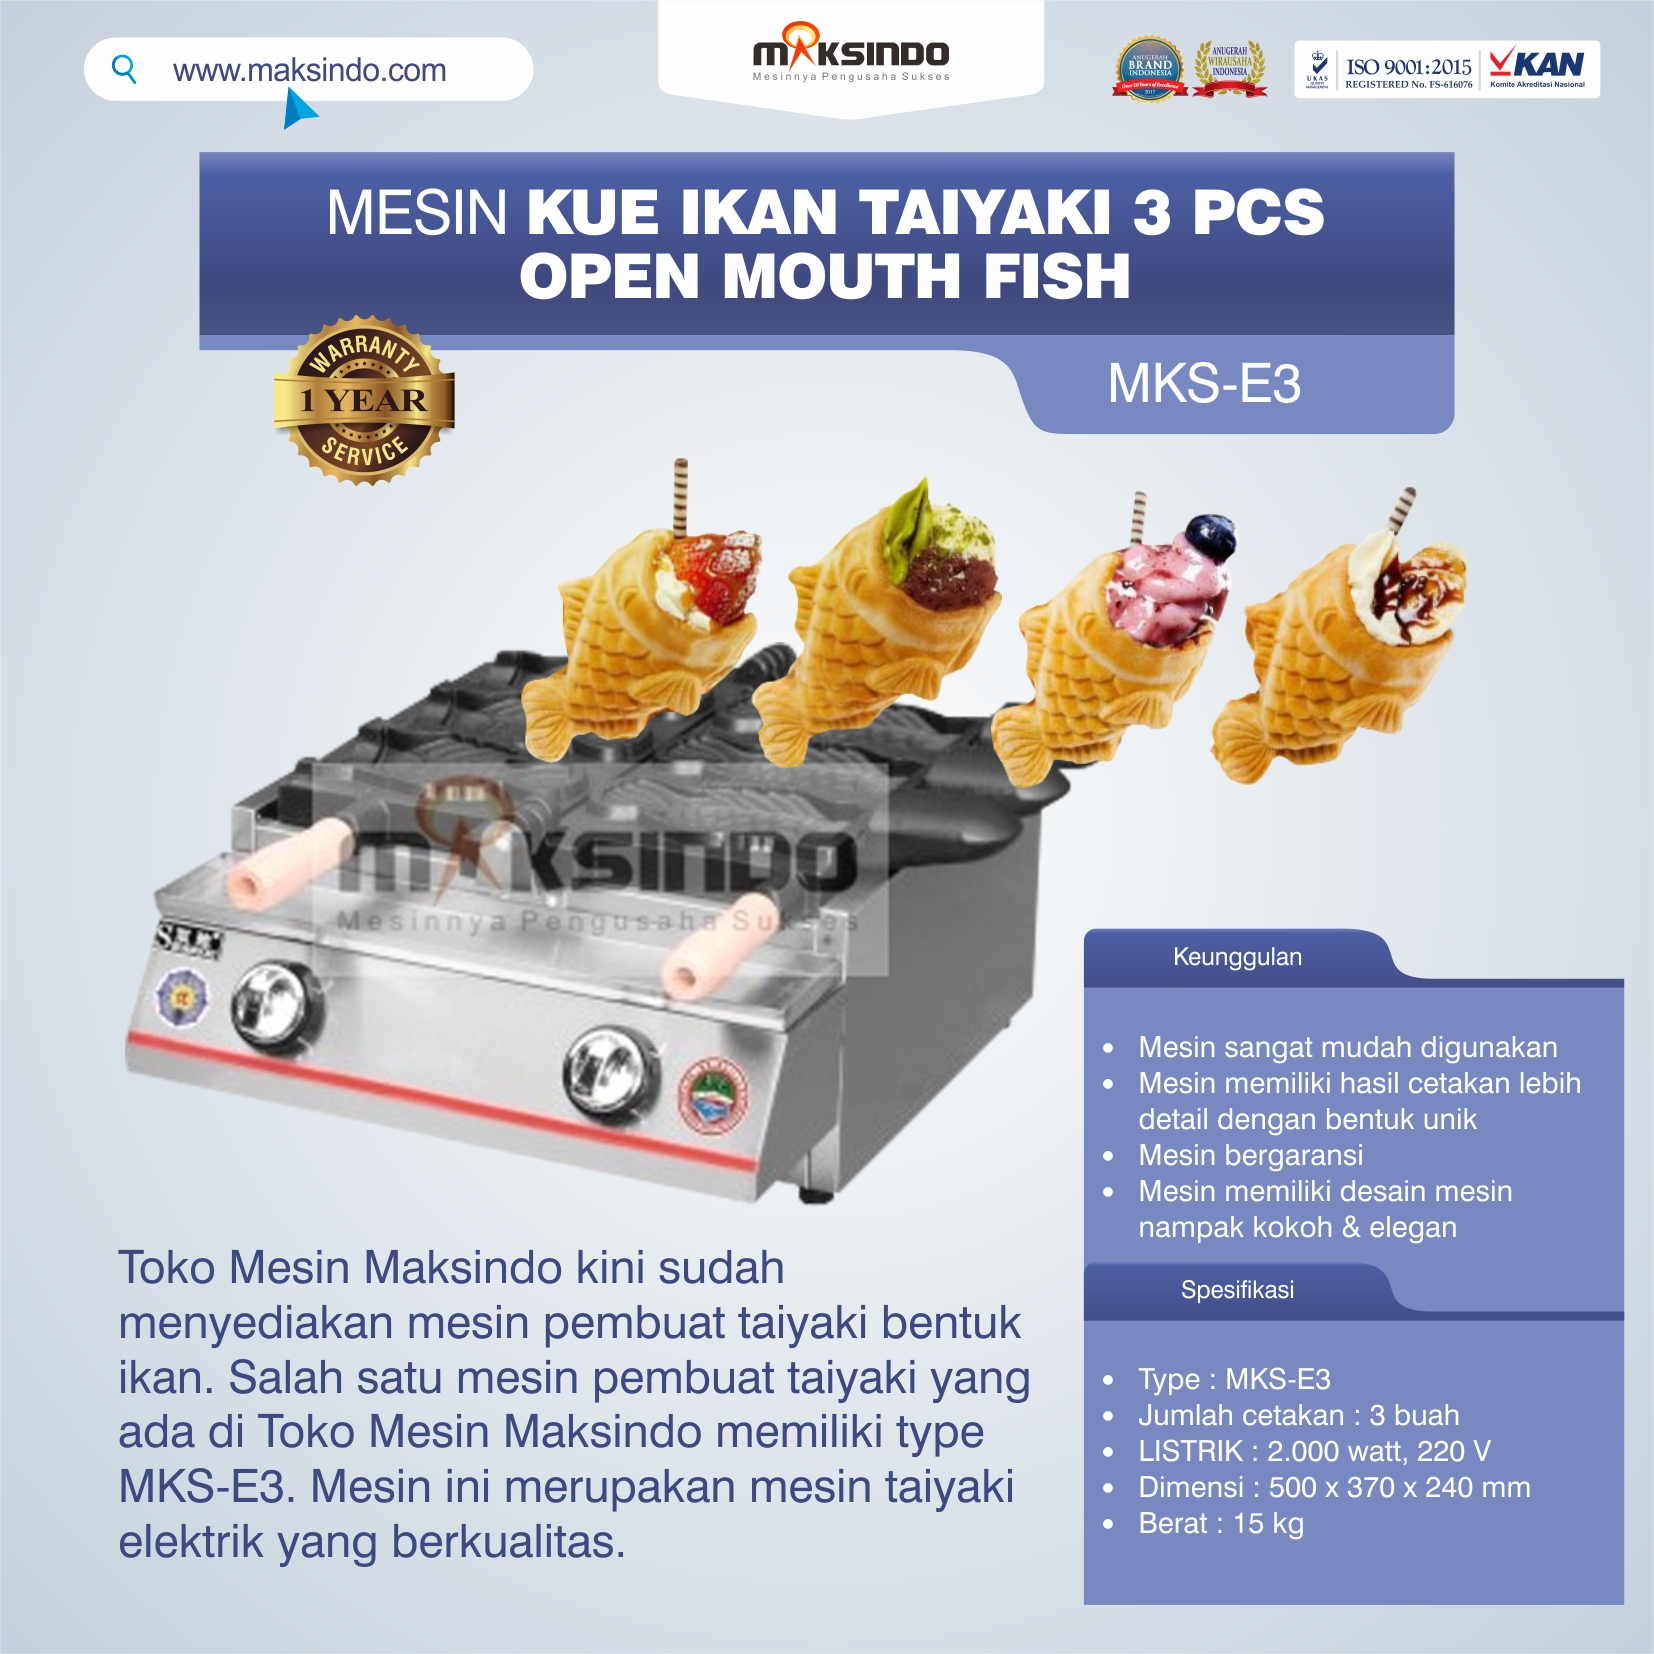 Mesin Kue Ikan Taiyaki (3 pcs) – Open Mouth Fish